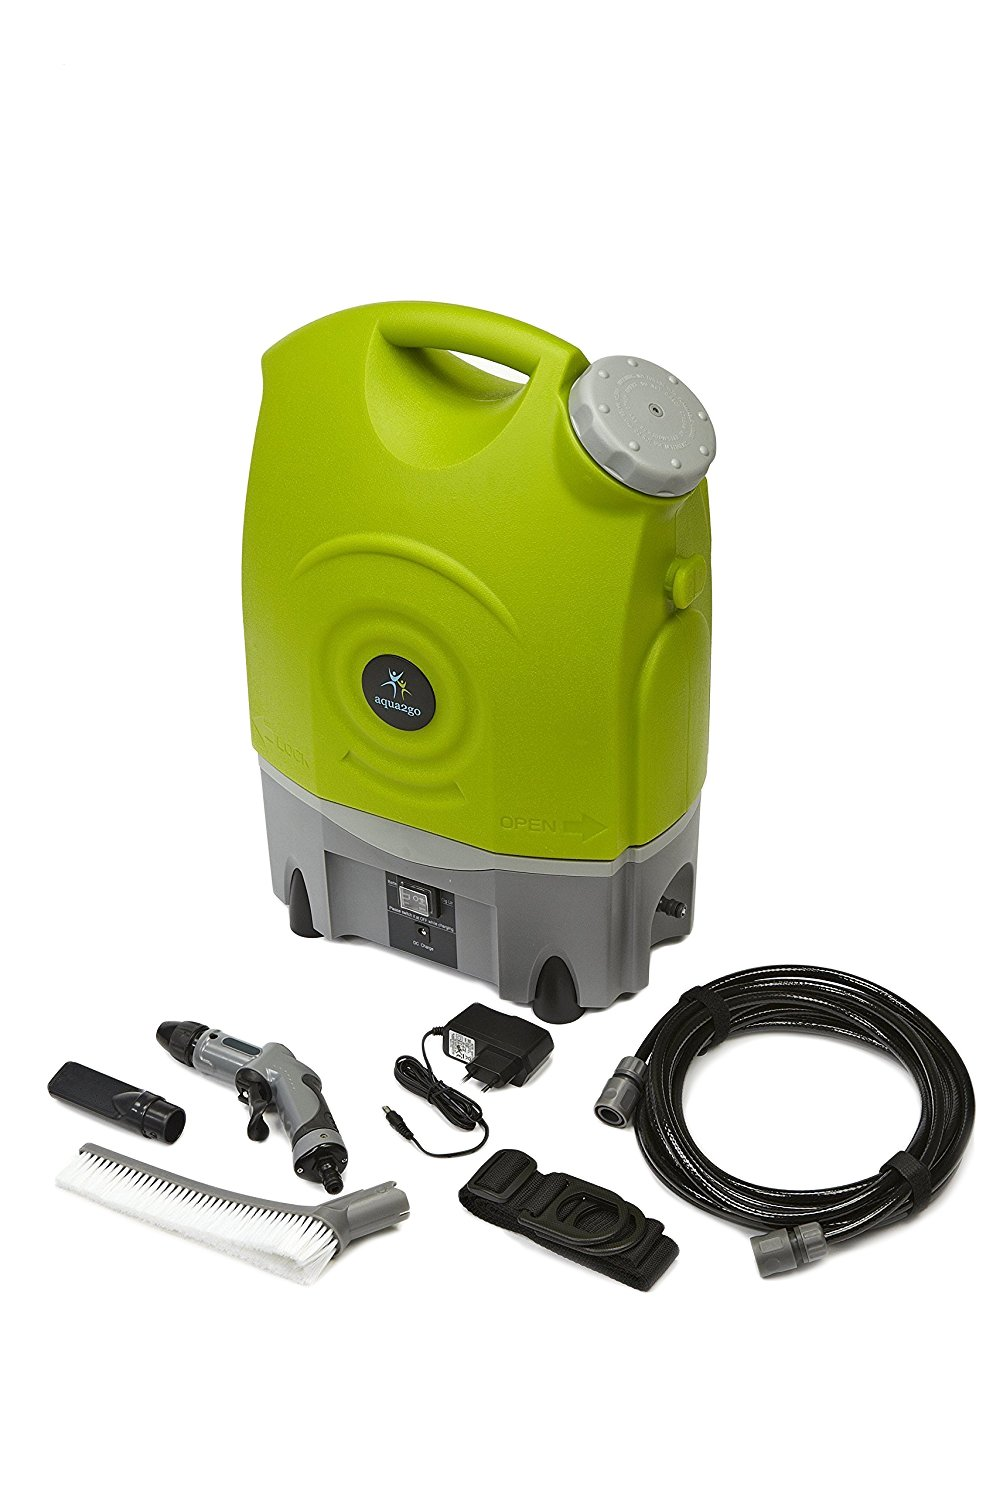 Aqua2Go Multipurpose Outdoor Portable Spray Washer with 17 Ltr/4.5 Gal Water Tank, Up to 130.5 psi, Hose length of 19.5 ft, Includes Rechargeable Battery